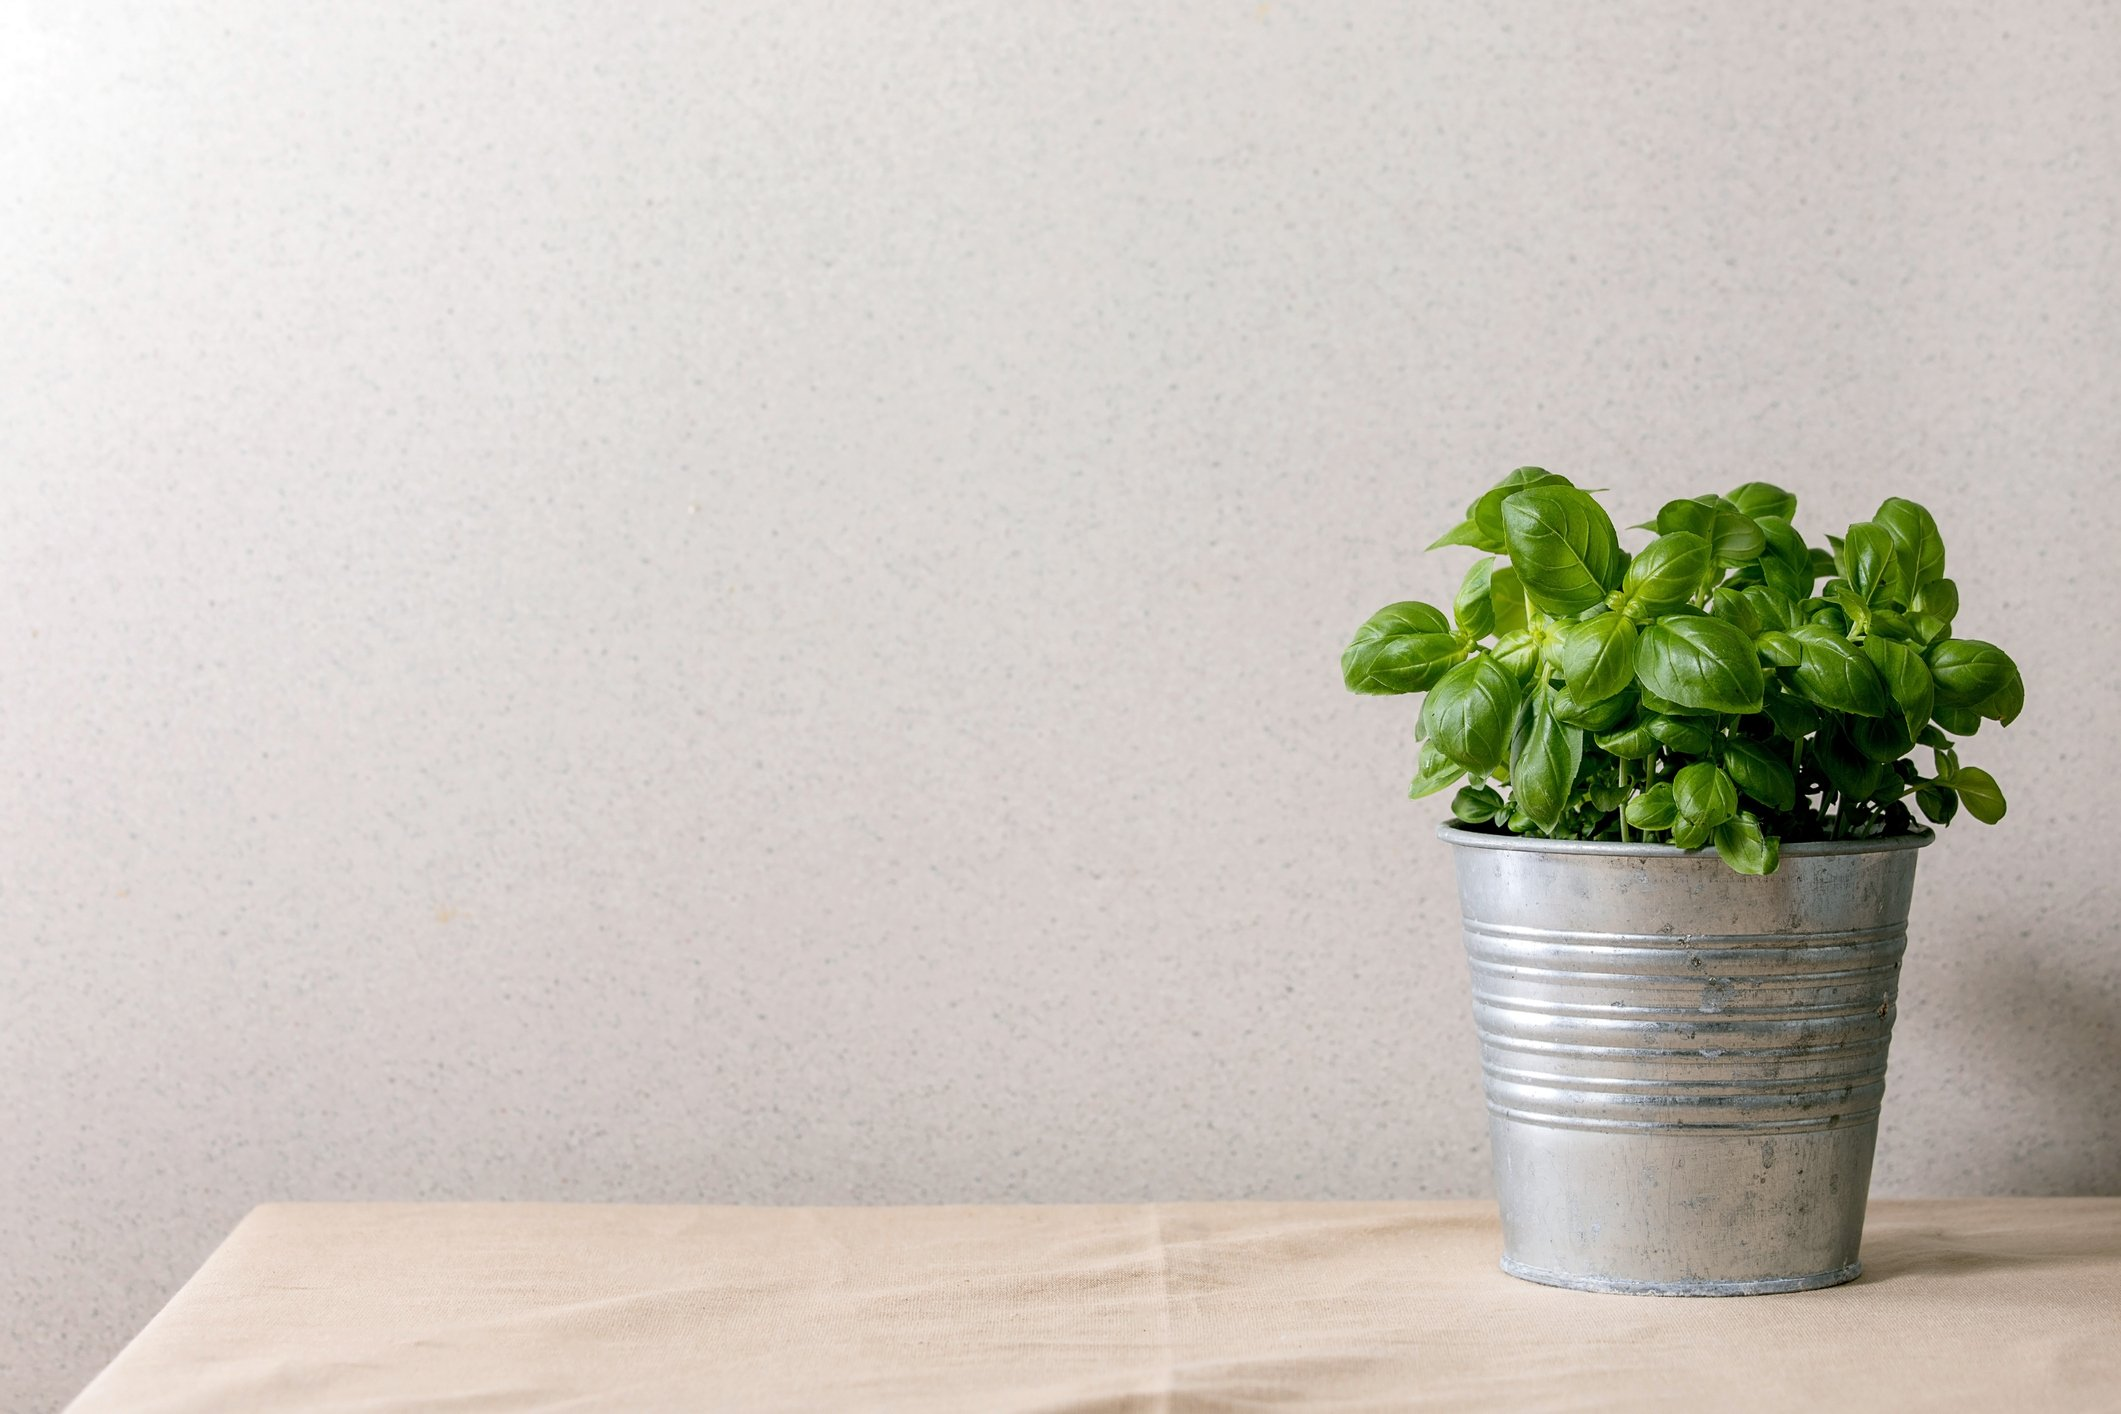 Une plante de salade dans un pot. | Photo : Getty Images